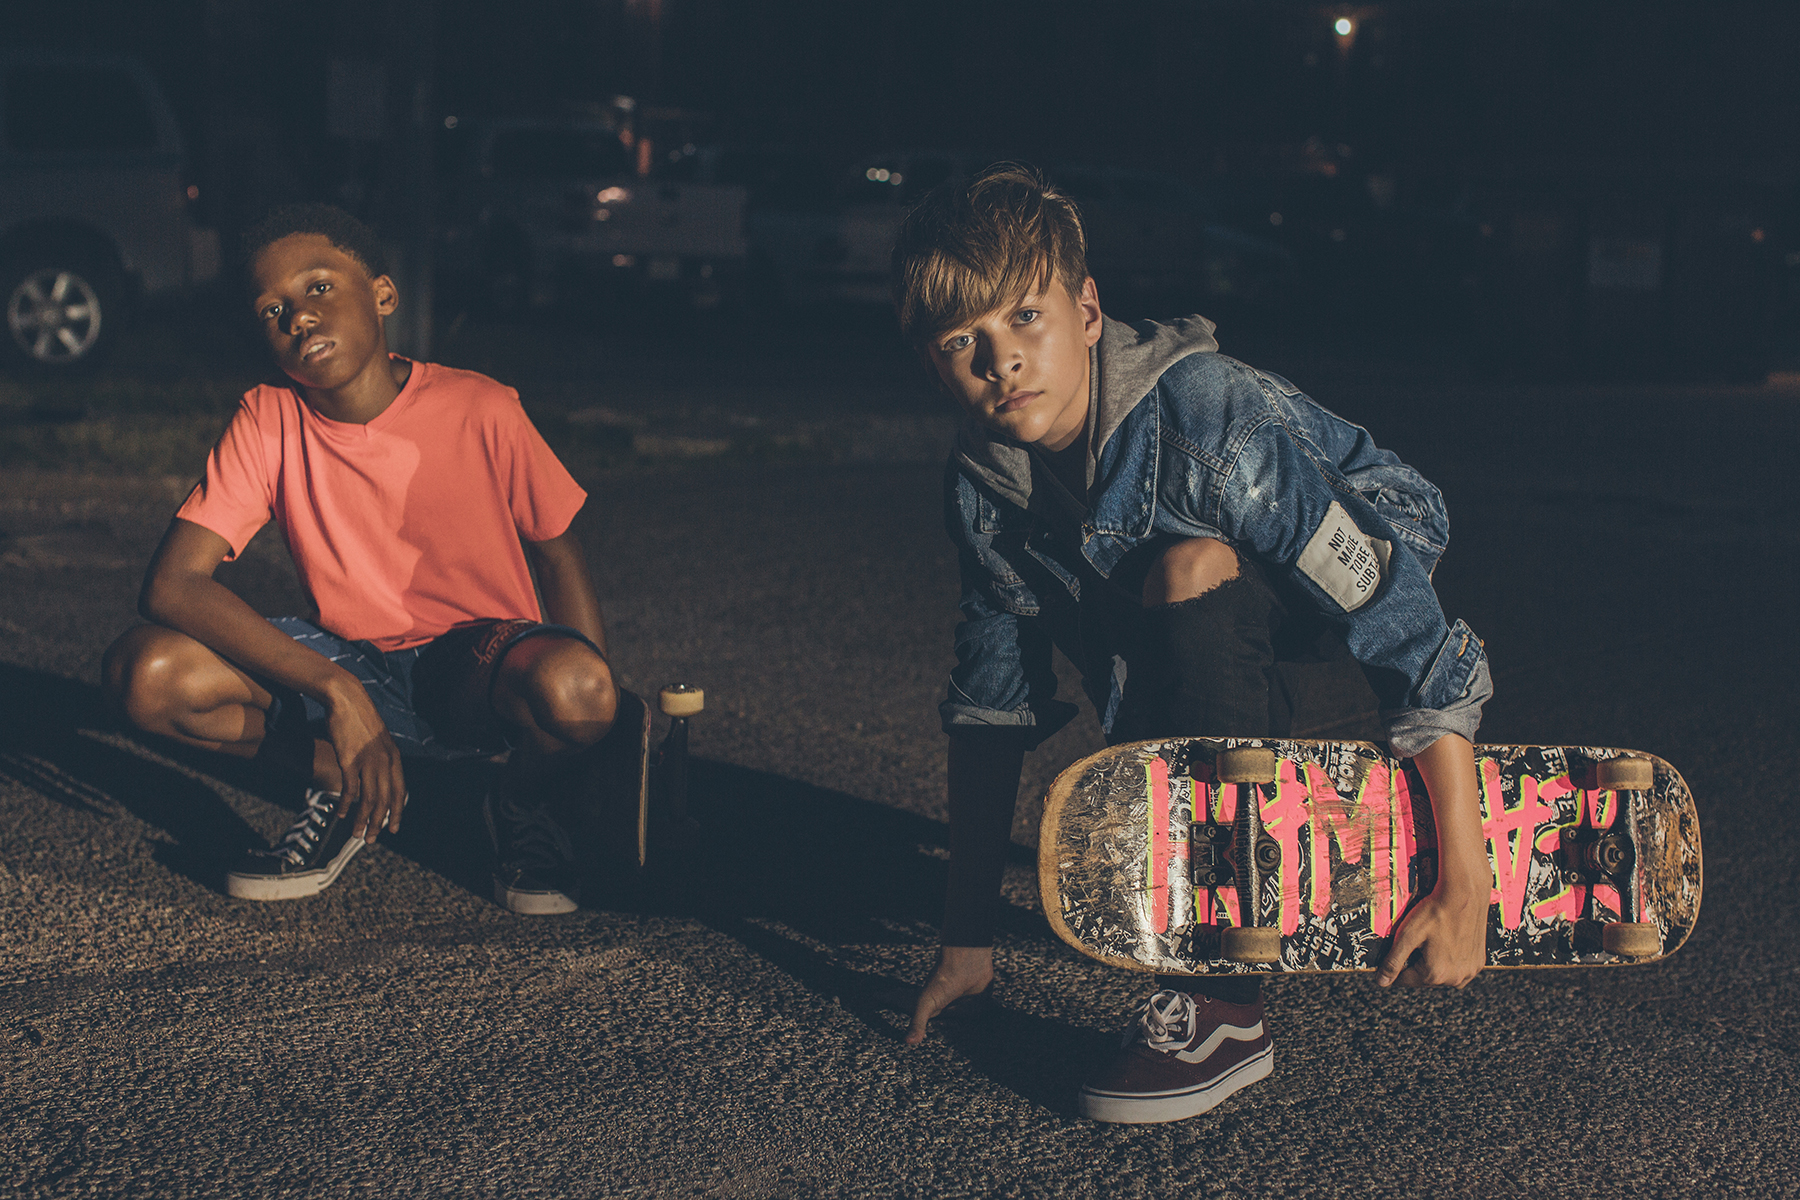 Teen Boys With Skateboard at Night_Alicia Stepp Photography_Kids.jpg